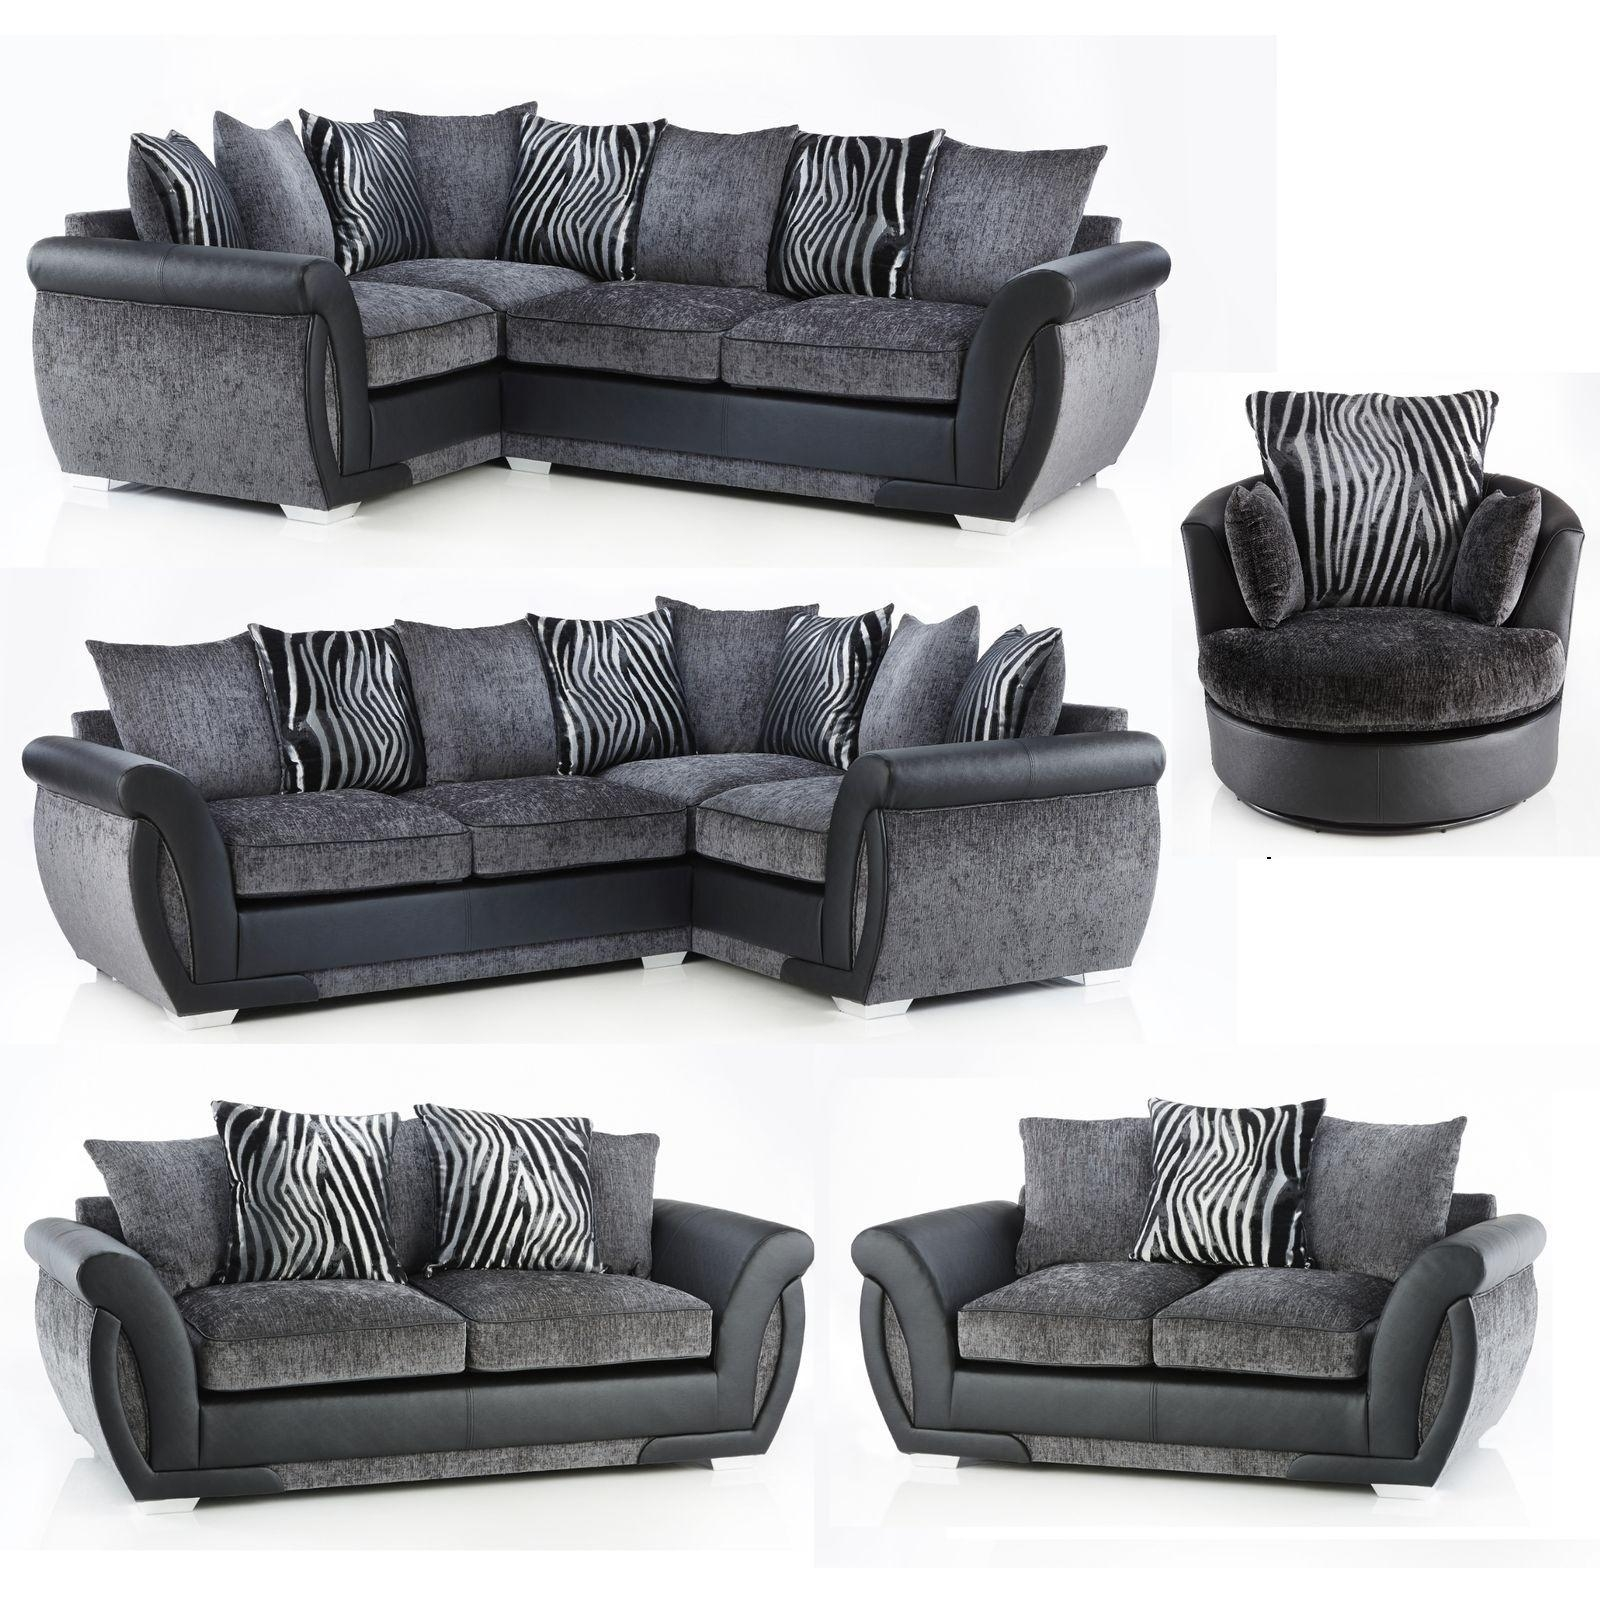 corner sofa and swivel chair indoor outdoor cushions 20 photos chairs ideas